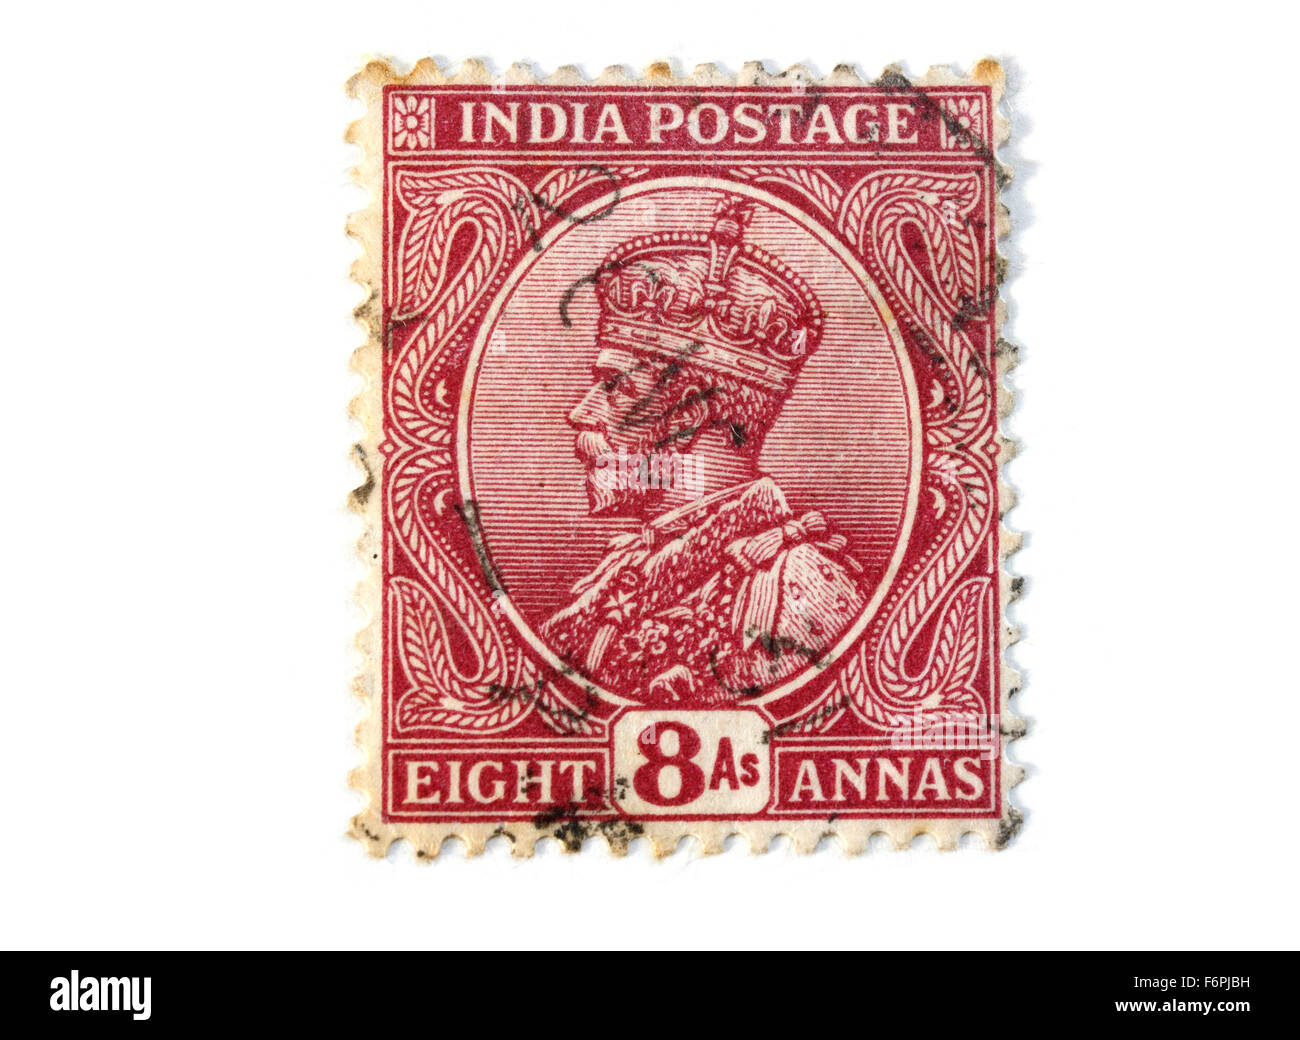 King George V Fifth India Postage Stamp - Stock Image